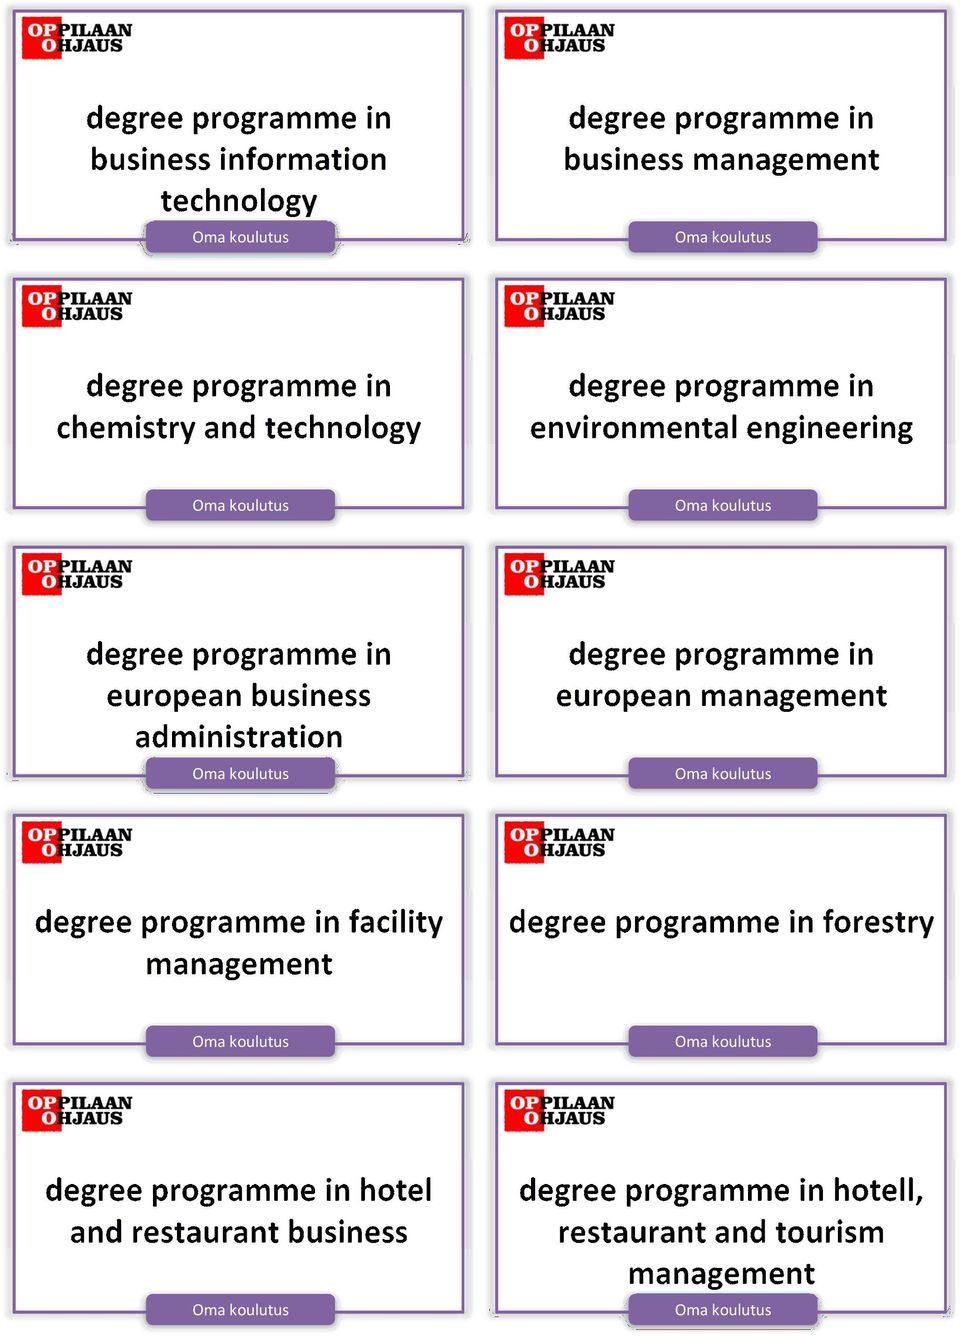 administration degree programme in european management degree programme in facility management degree programme